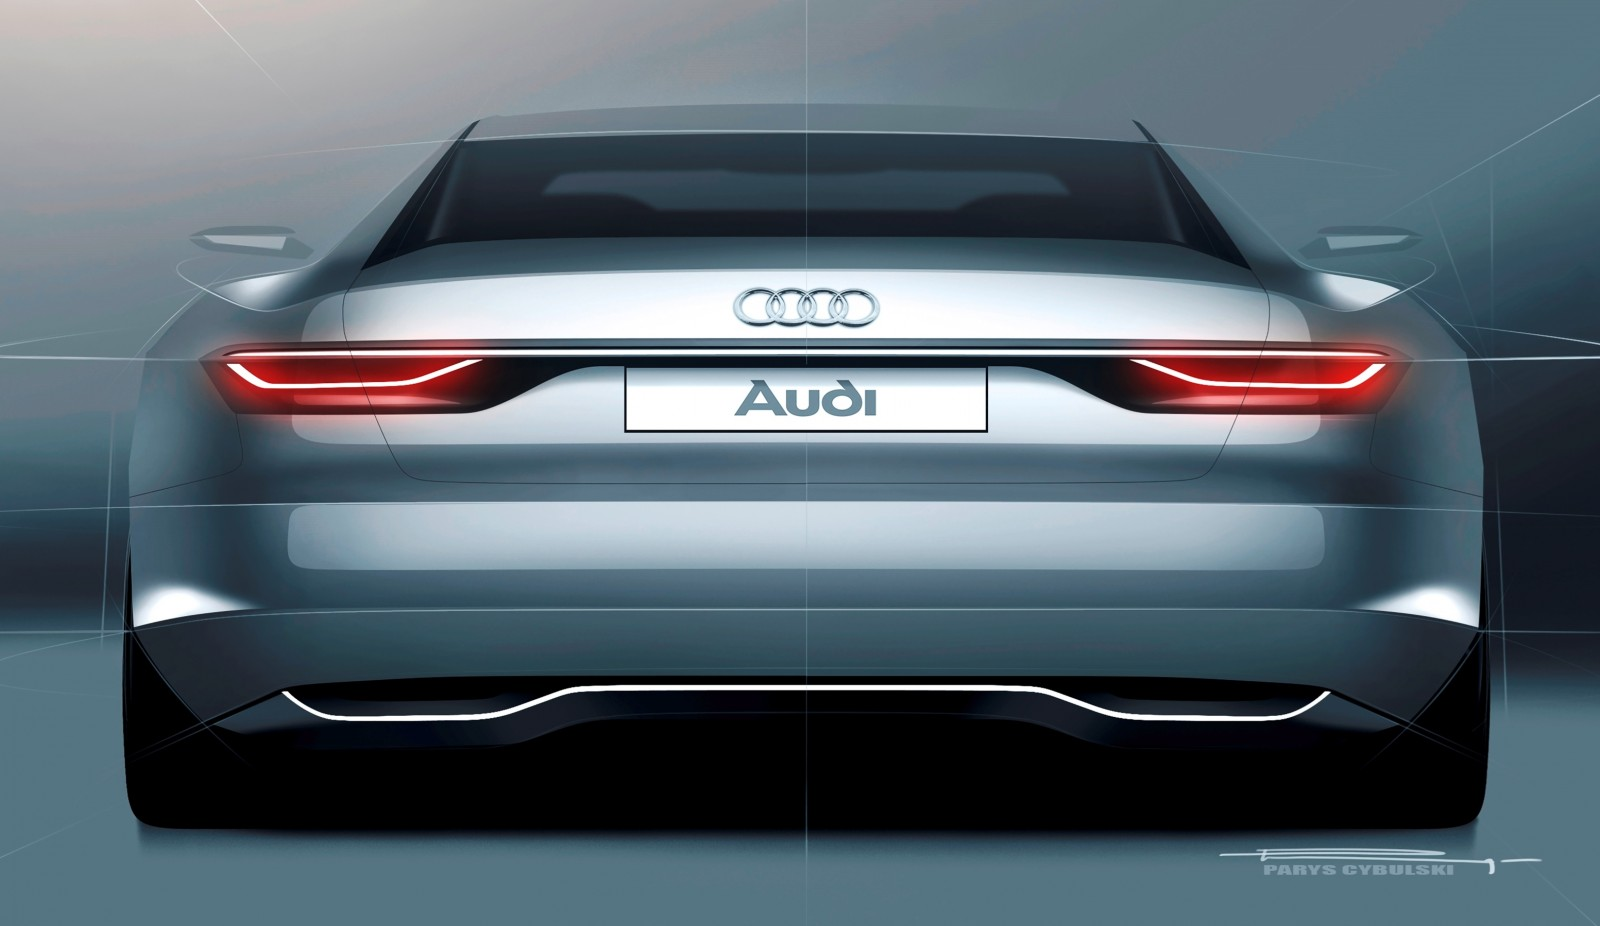 2014 Audi Prologue is Worst of LA 2014 5